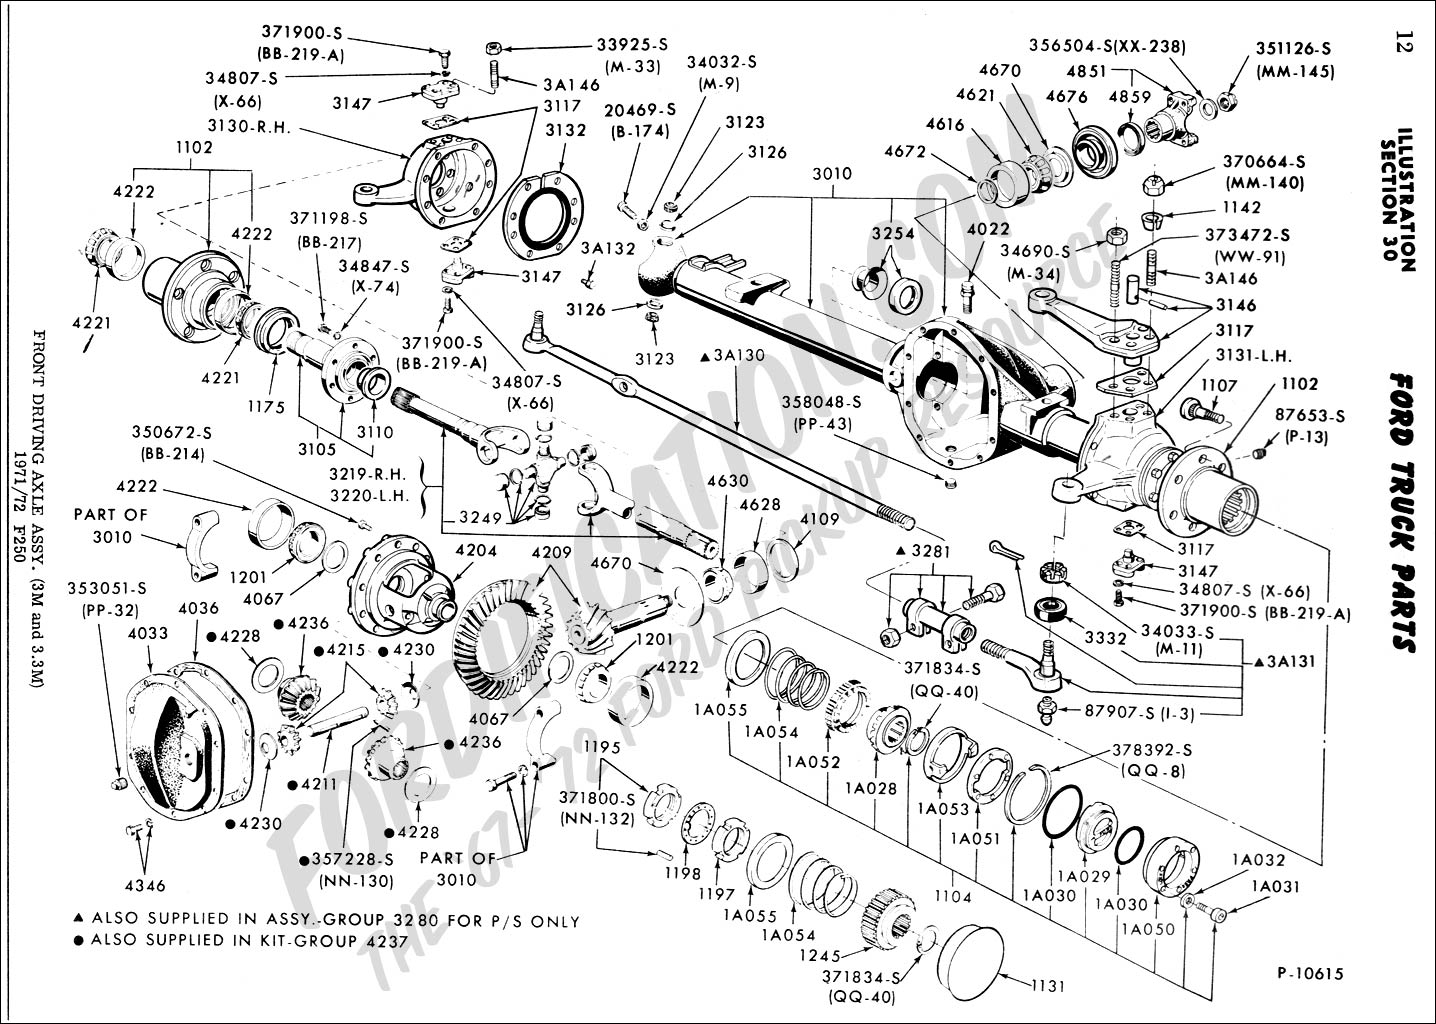 2008 Ford Mustang Brake Wiring Diagram Ask Answer Porsche 997 Truck Technical Drawings And Schematics Section A Front Rear Axle Assemblies Chevrolet